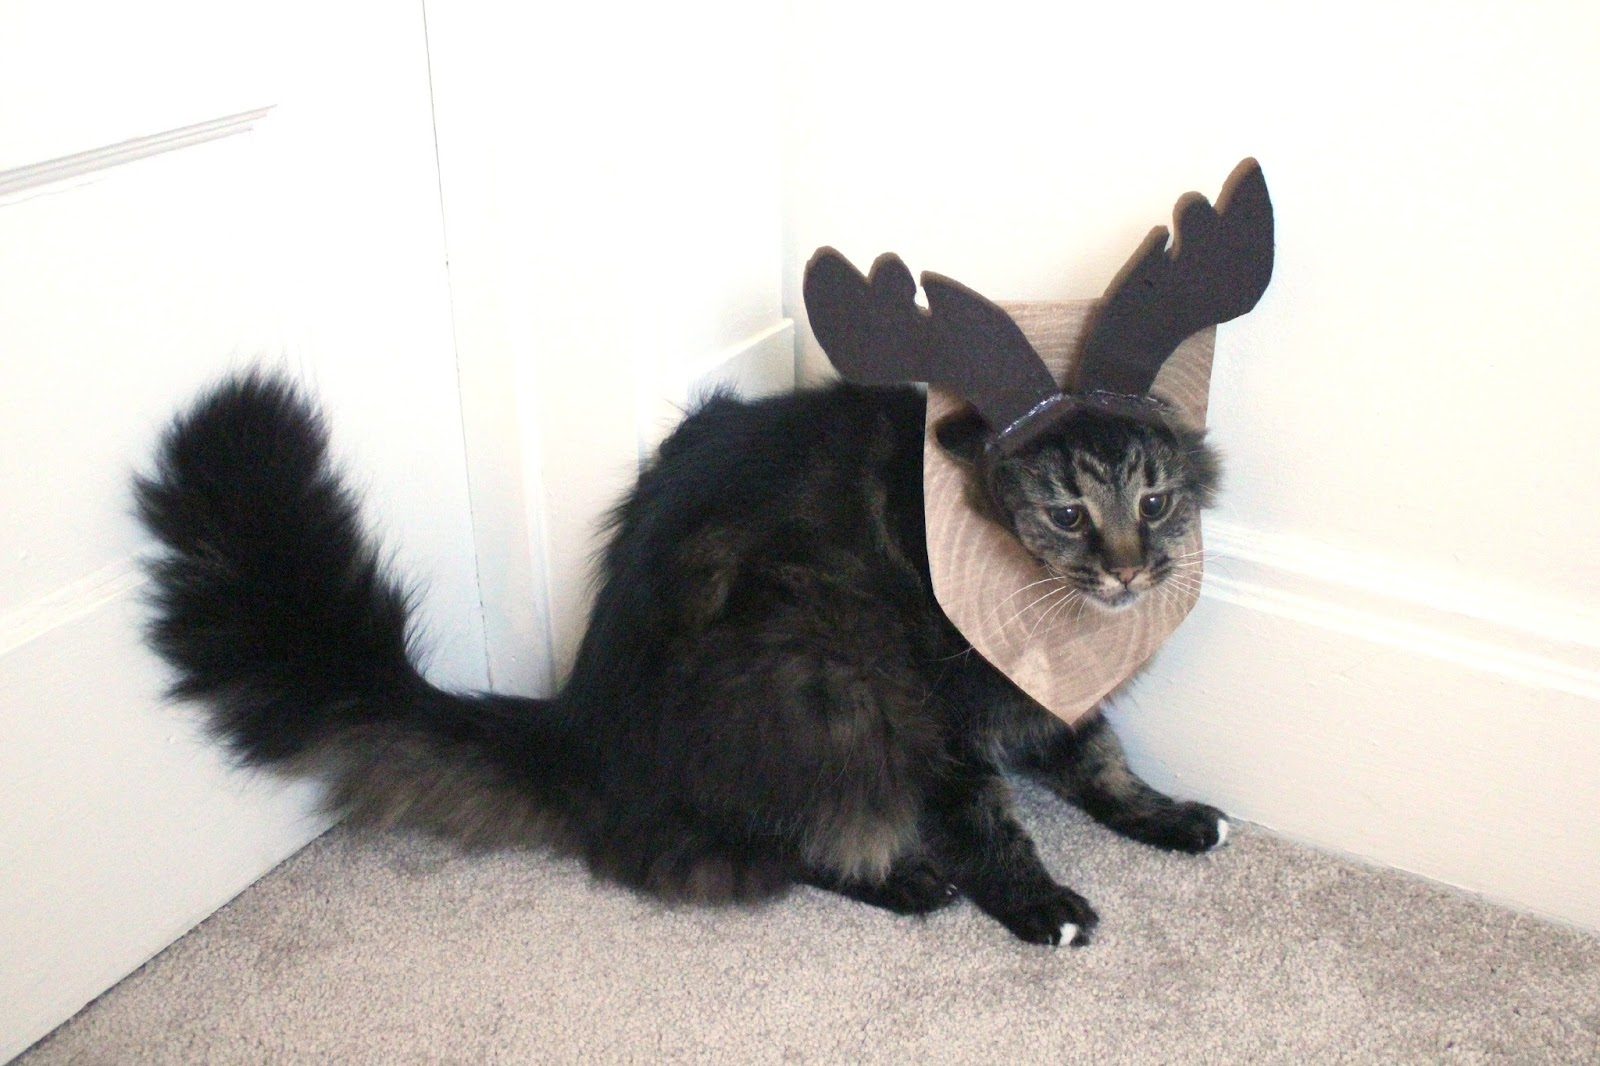 http://blogs.perl.org/users/byterock/The%20Incredible%20Mounted%20Cat%20Moose%20Costume%2019.jpg